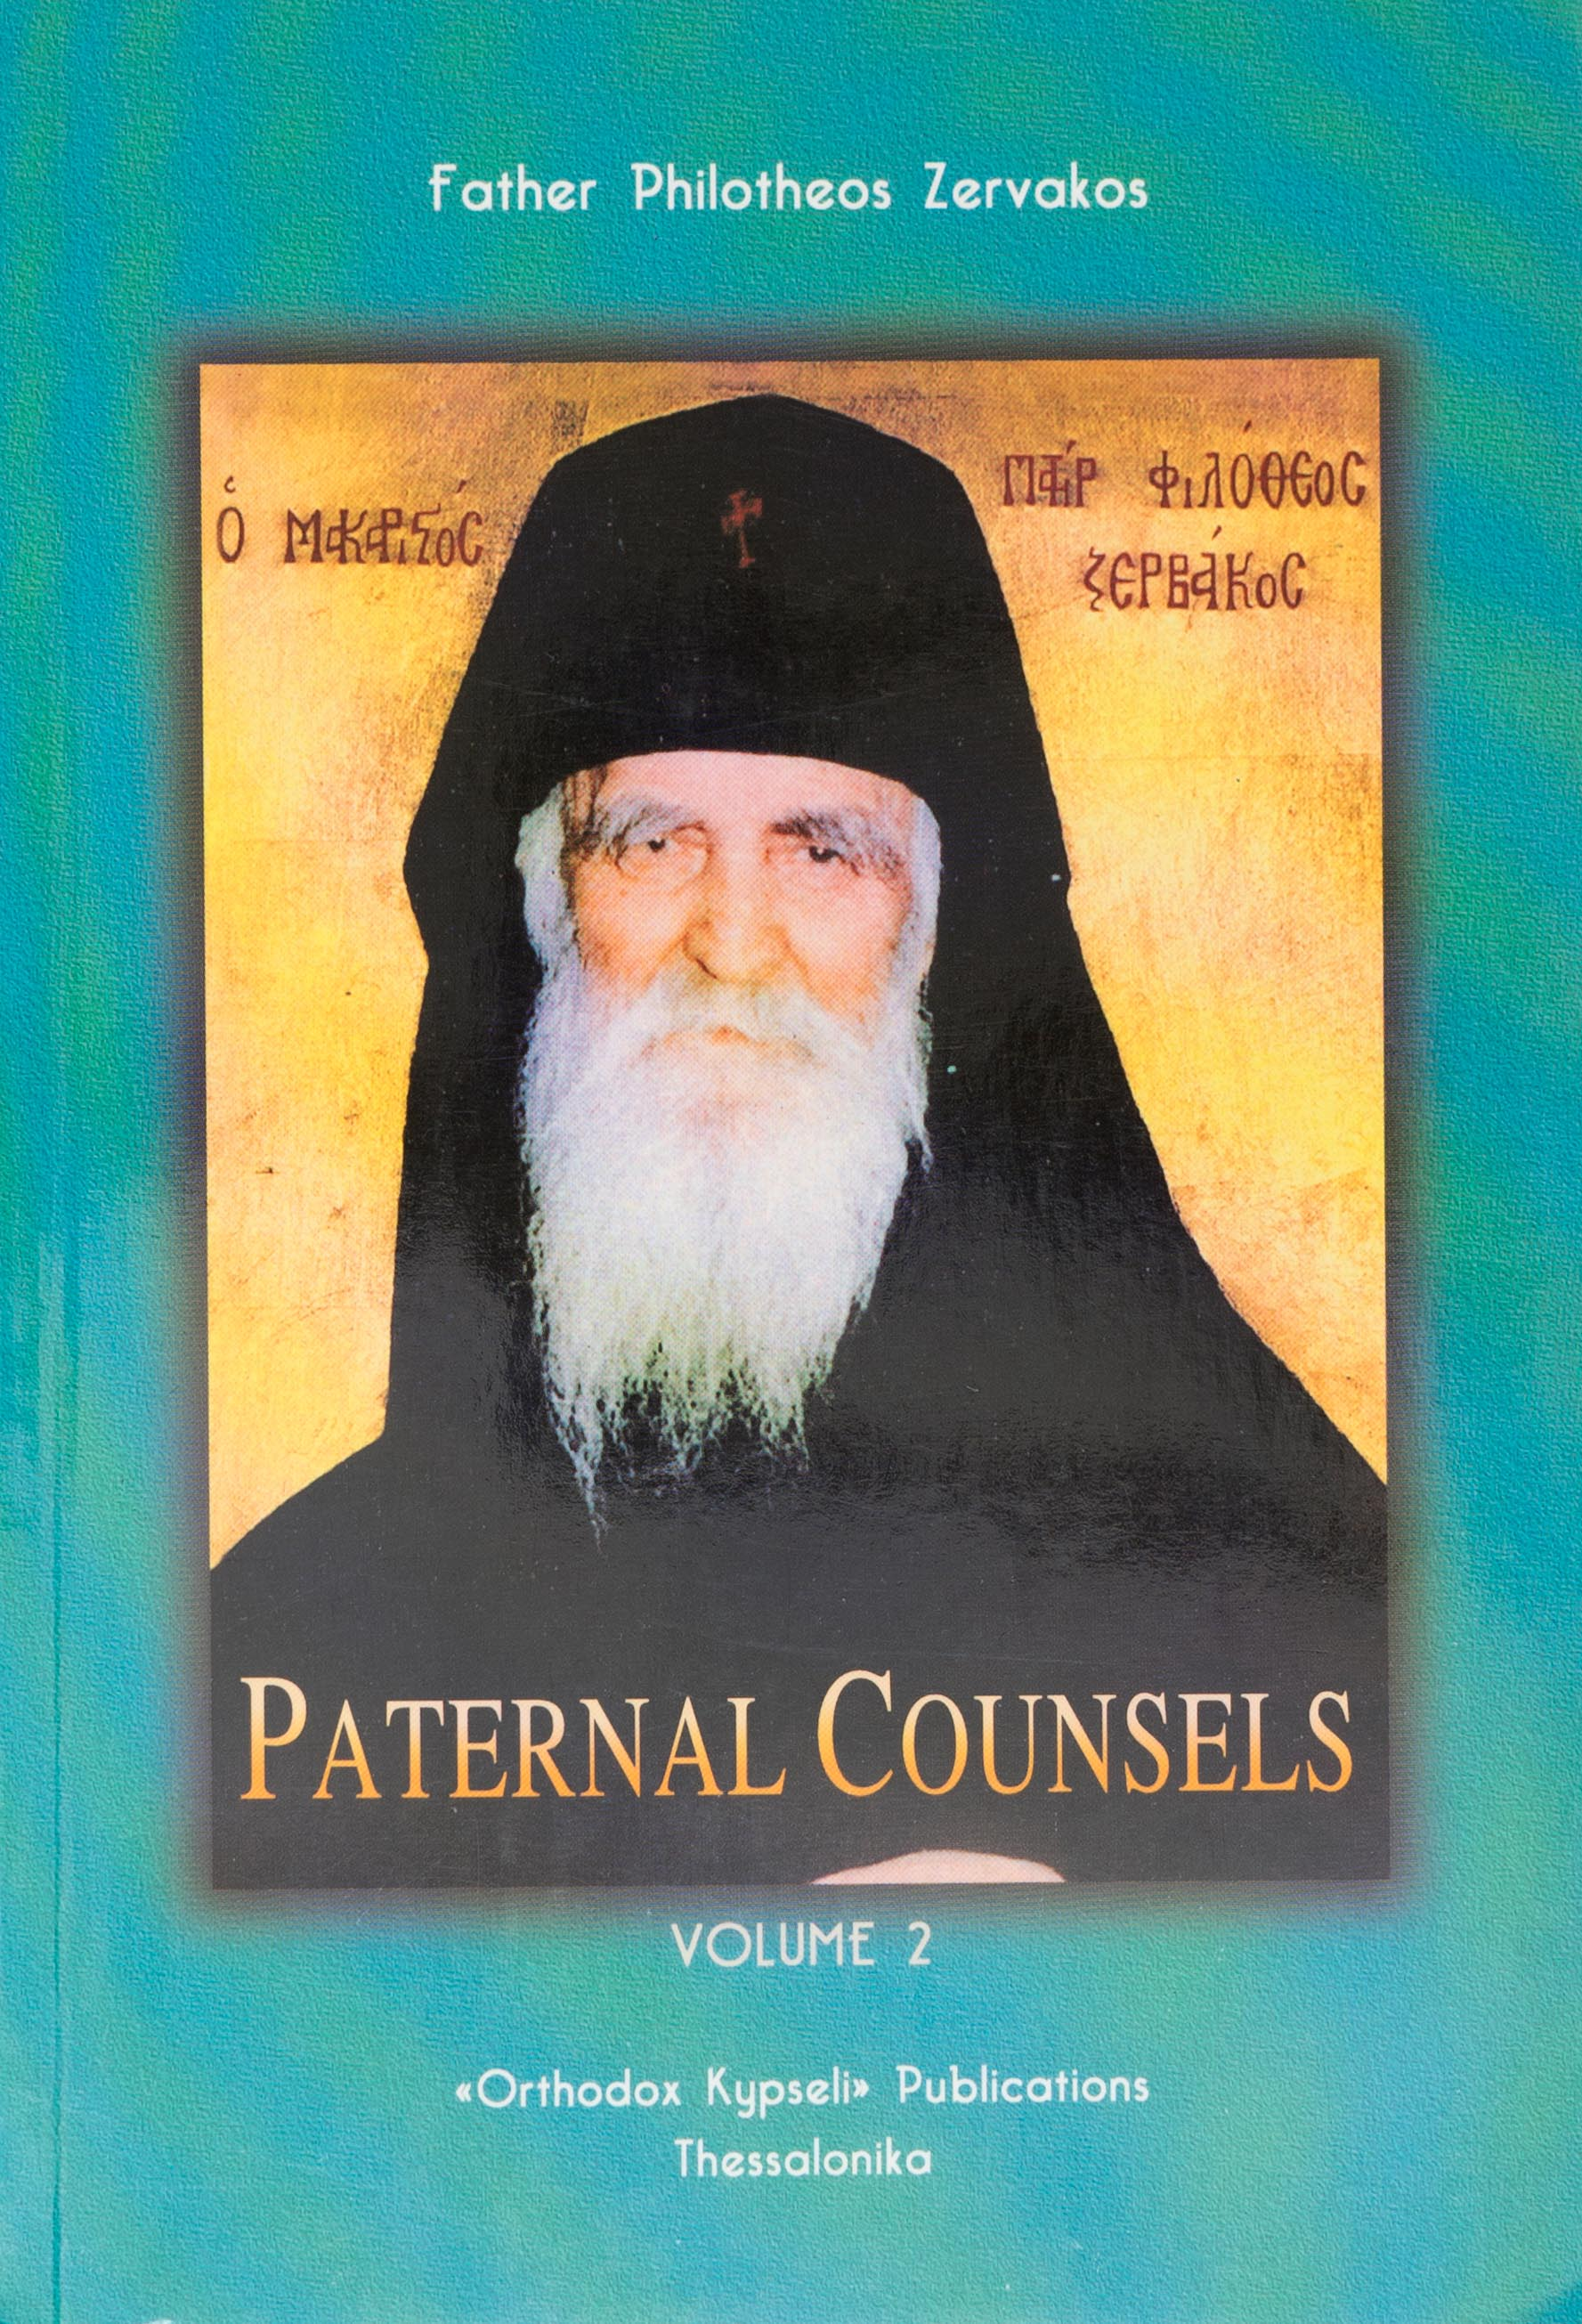 Paternal Counsels Vol. 2 Father Philotheos Zervakos